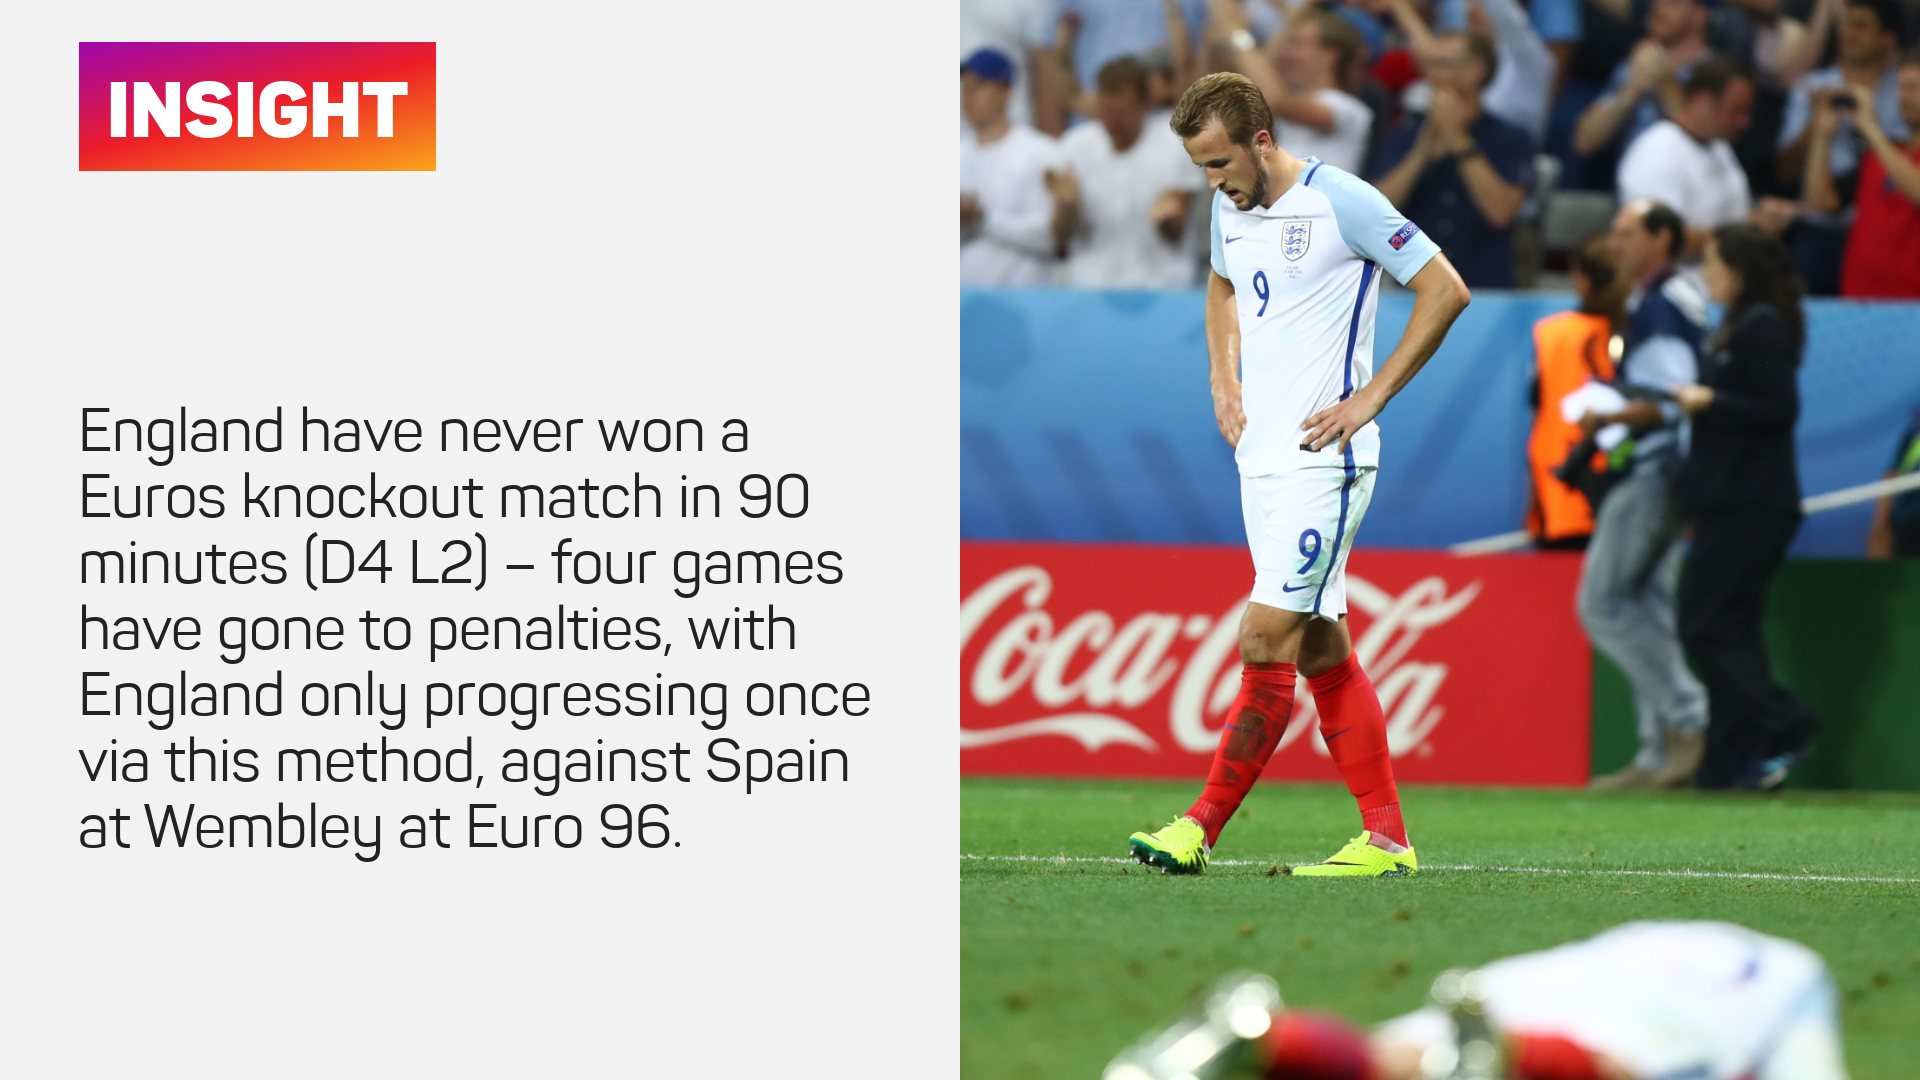 England have never won a European Championships knockout match in 90 minutes (D4 L2) – four games have gone to penalties, with England only progressing once via this method, against Spain at Wembley at EURO 96.